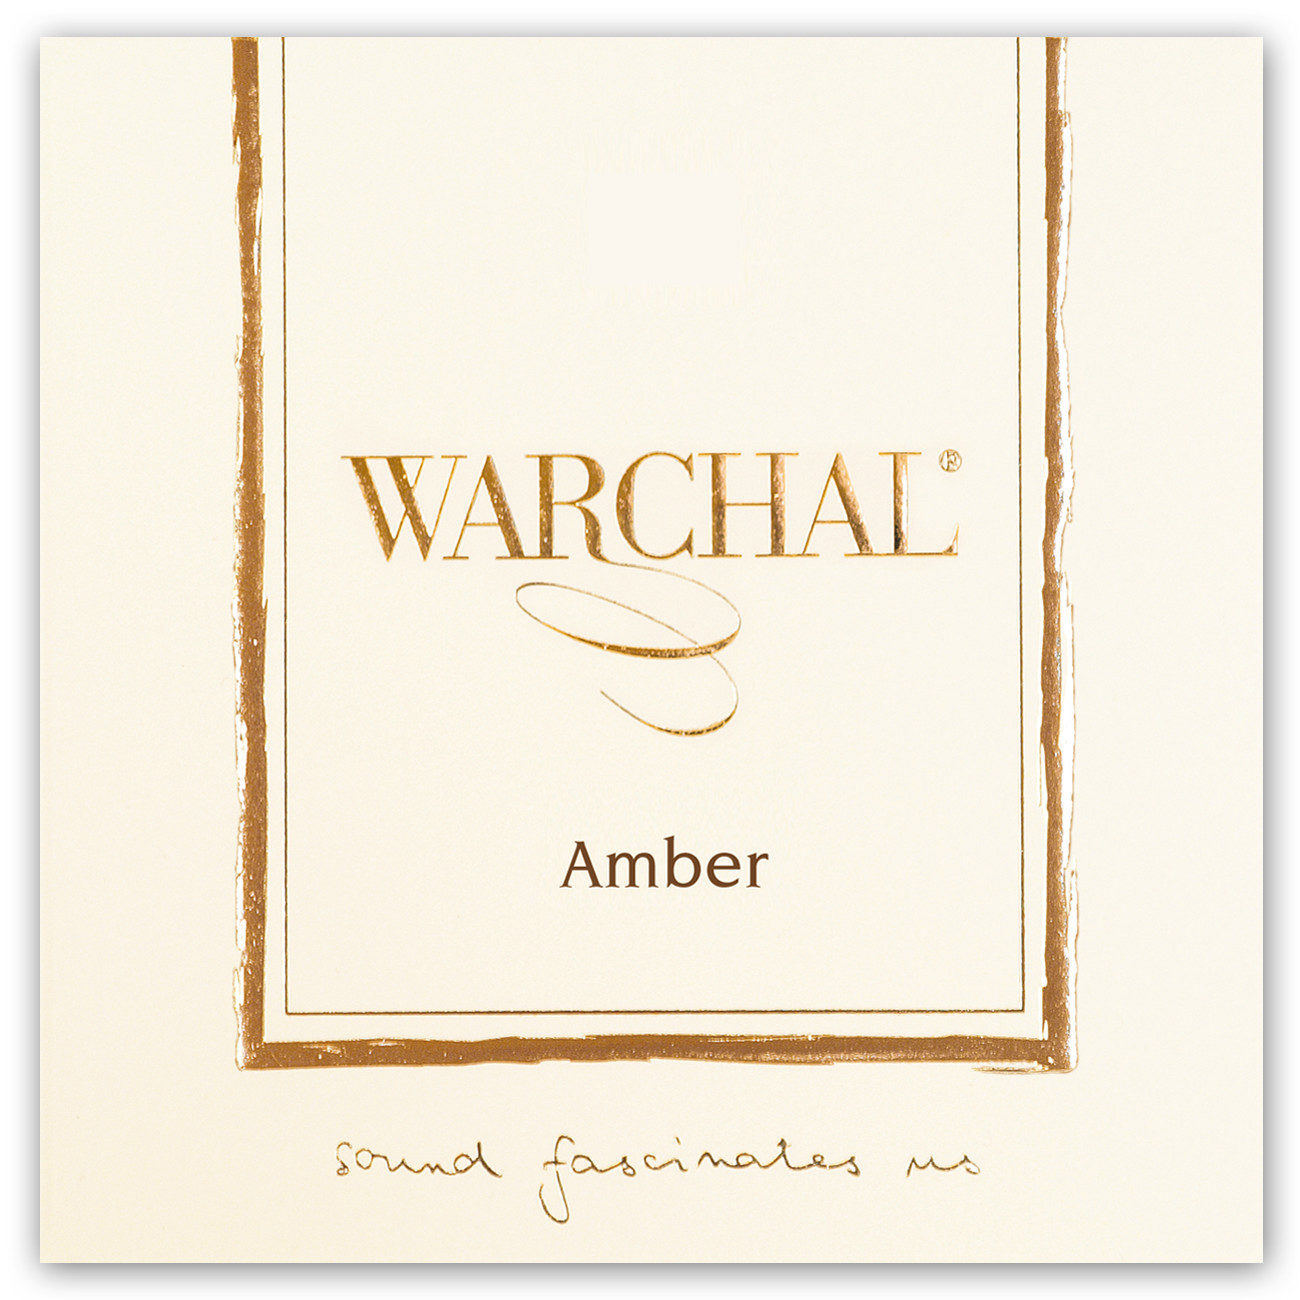 Warchal Amber Cello A